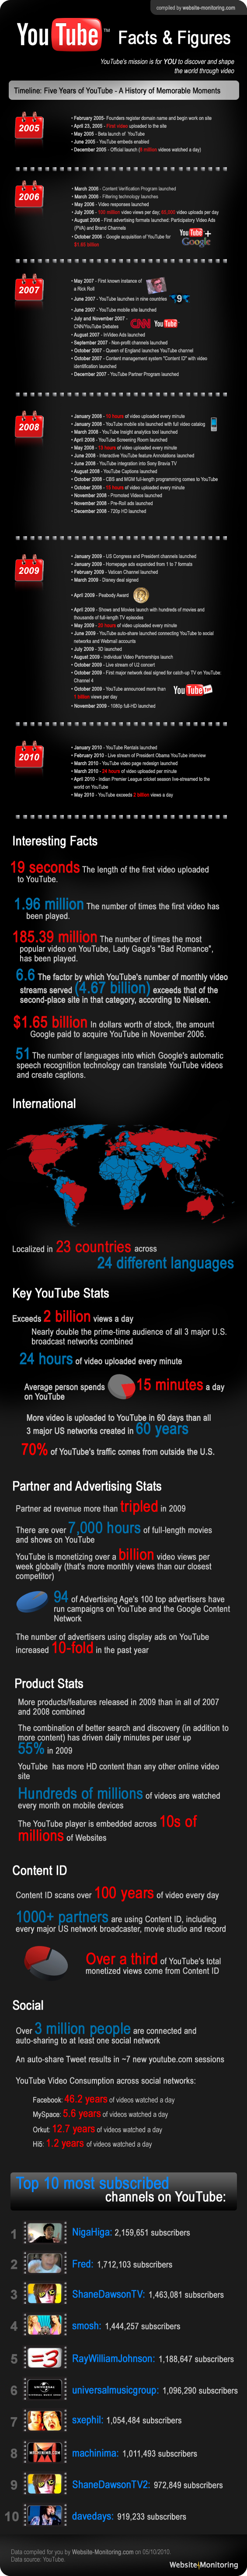 YouTube Key Facts & Figures Infographic